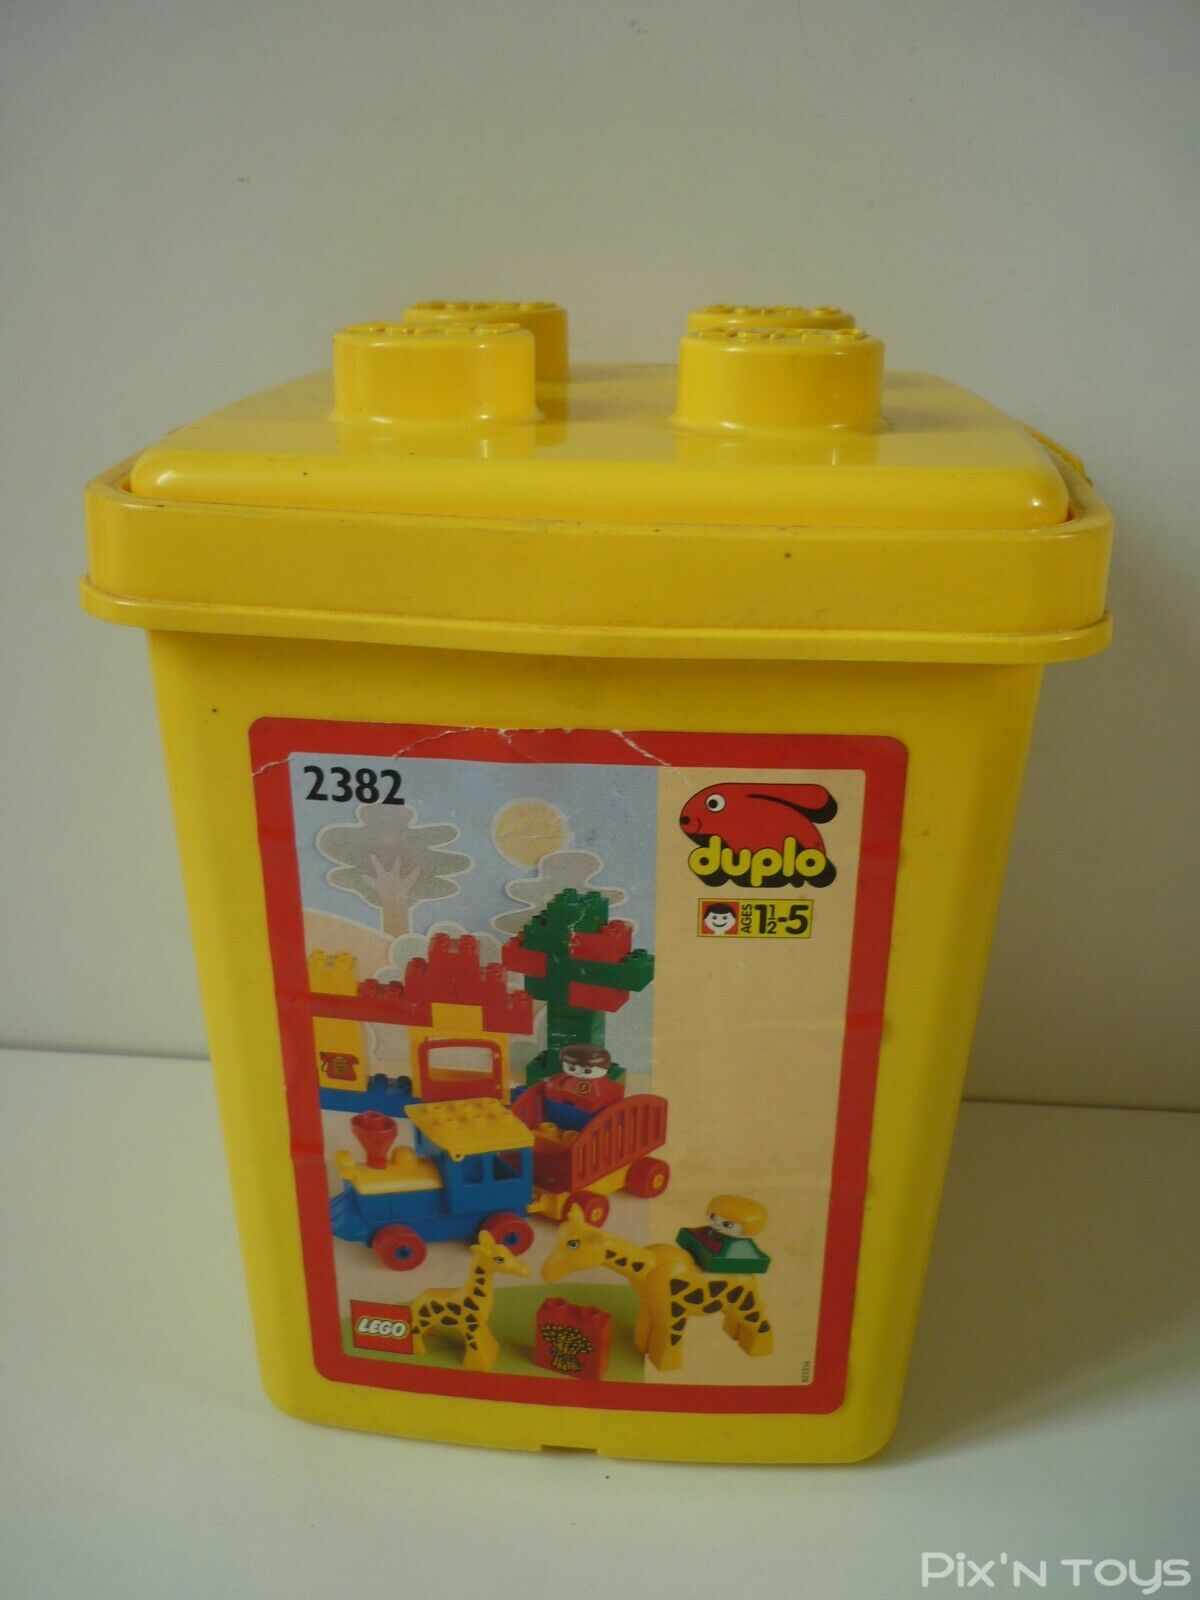 Lego Duplo 2382-1 Lego Train Bucket